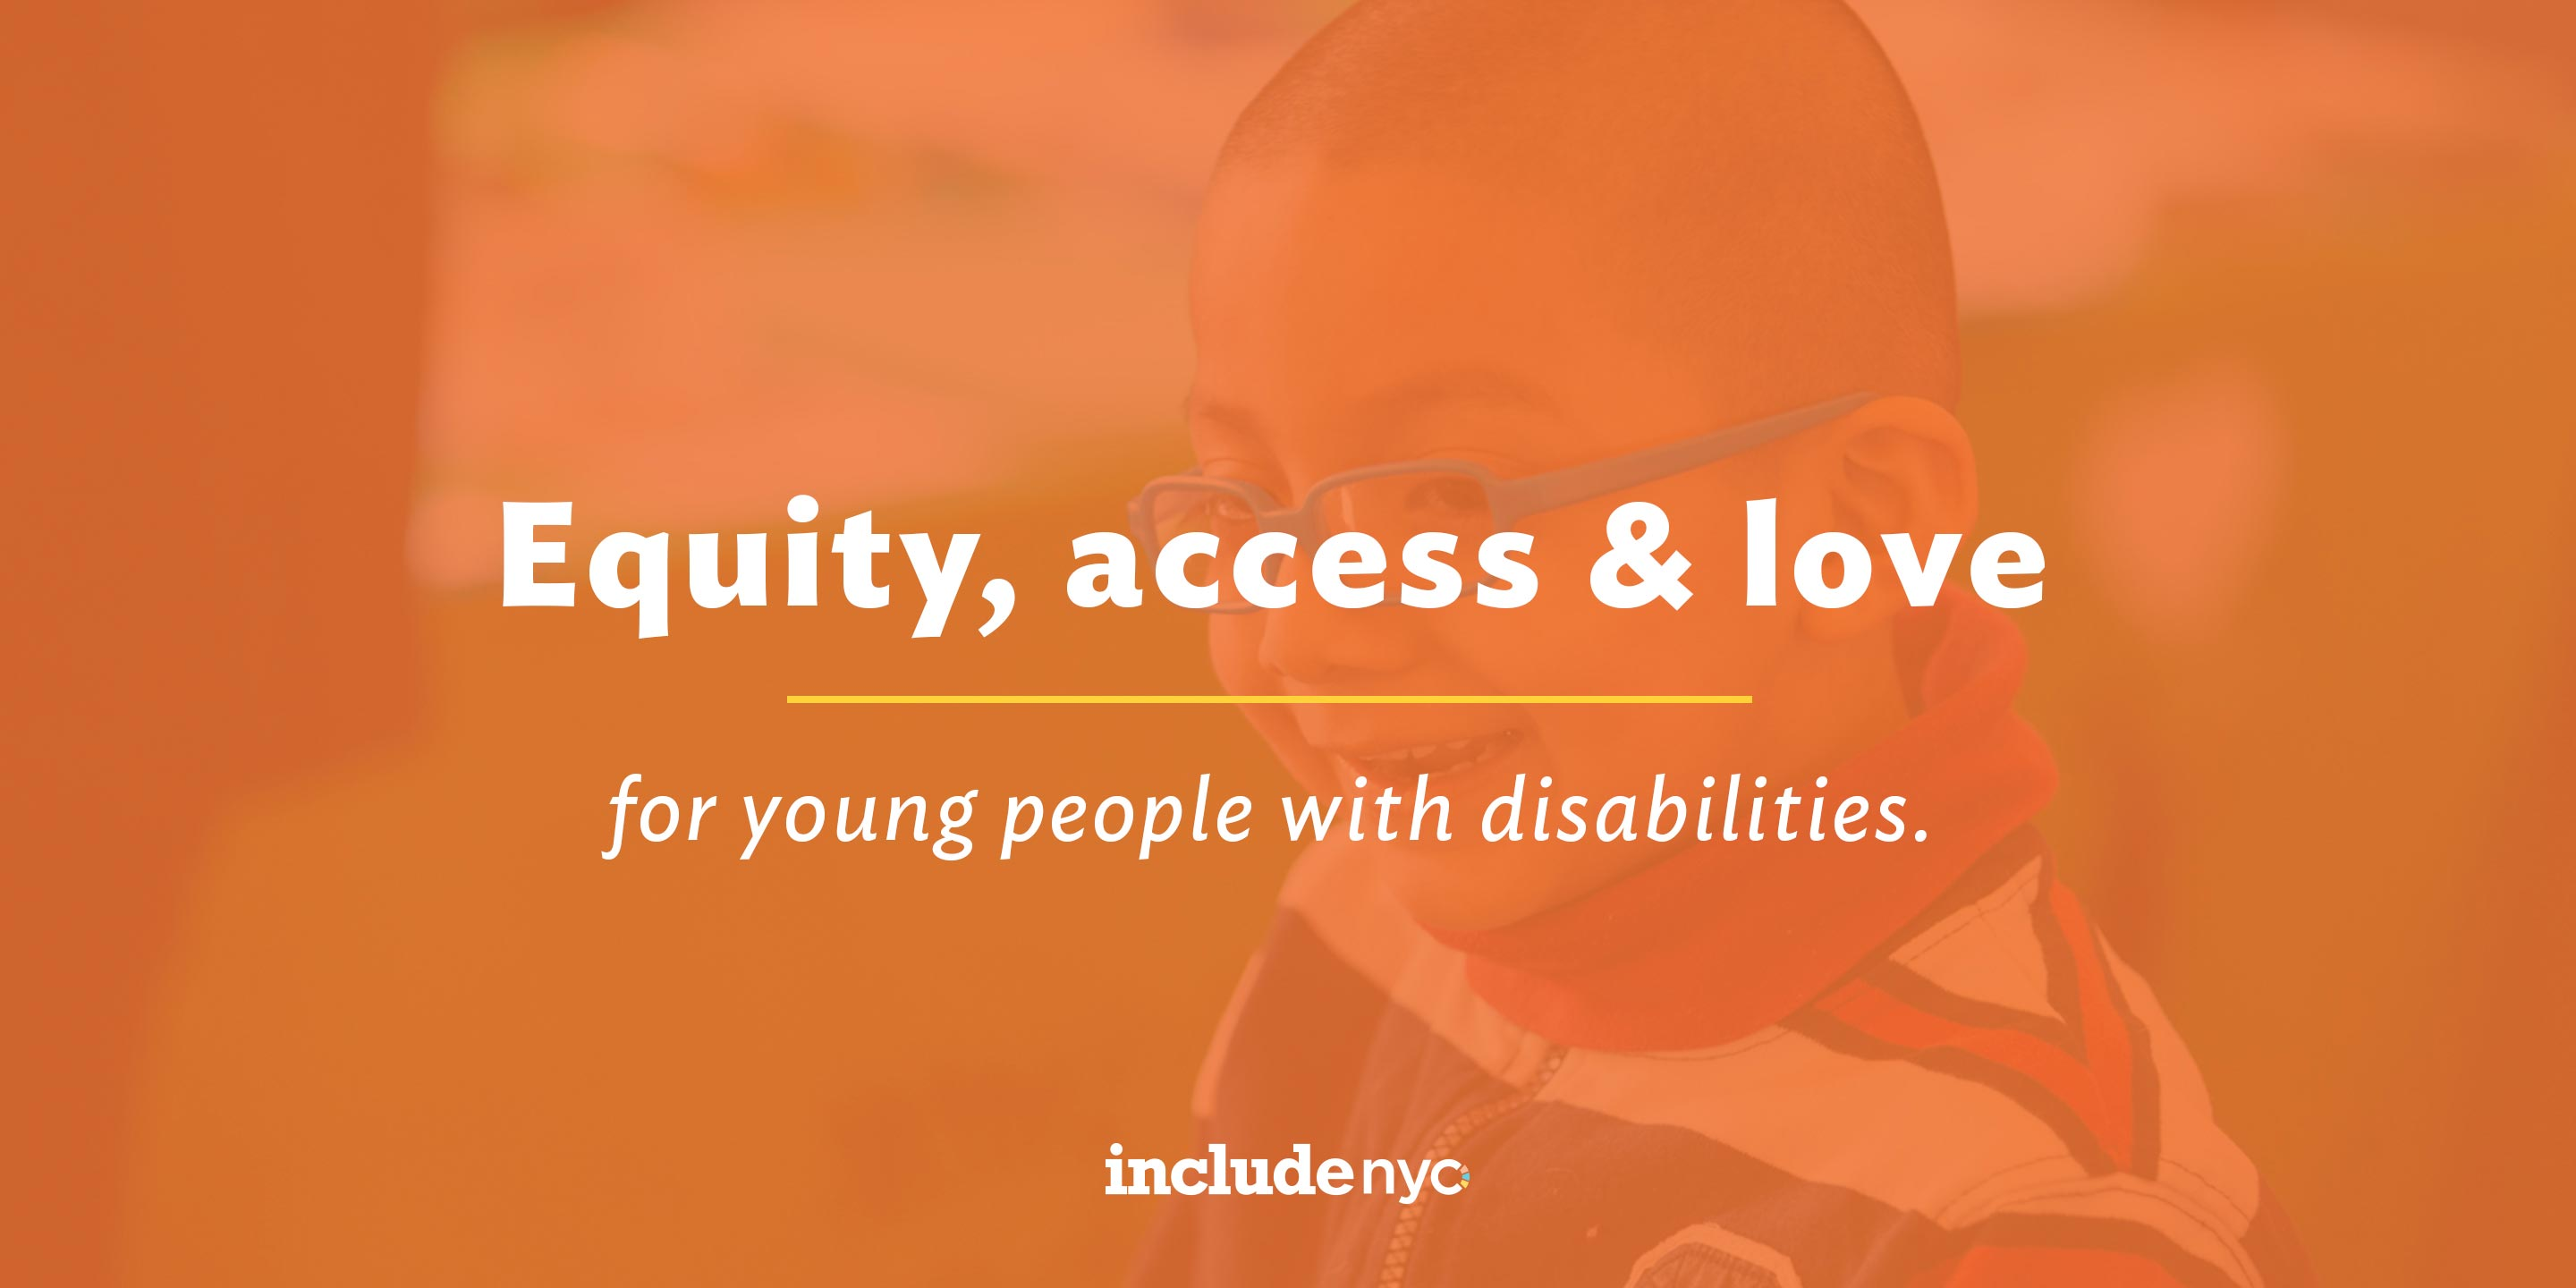 IncludeNYC